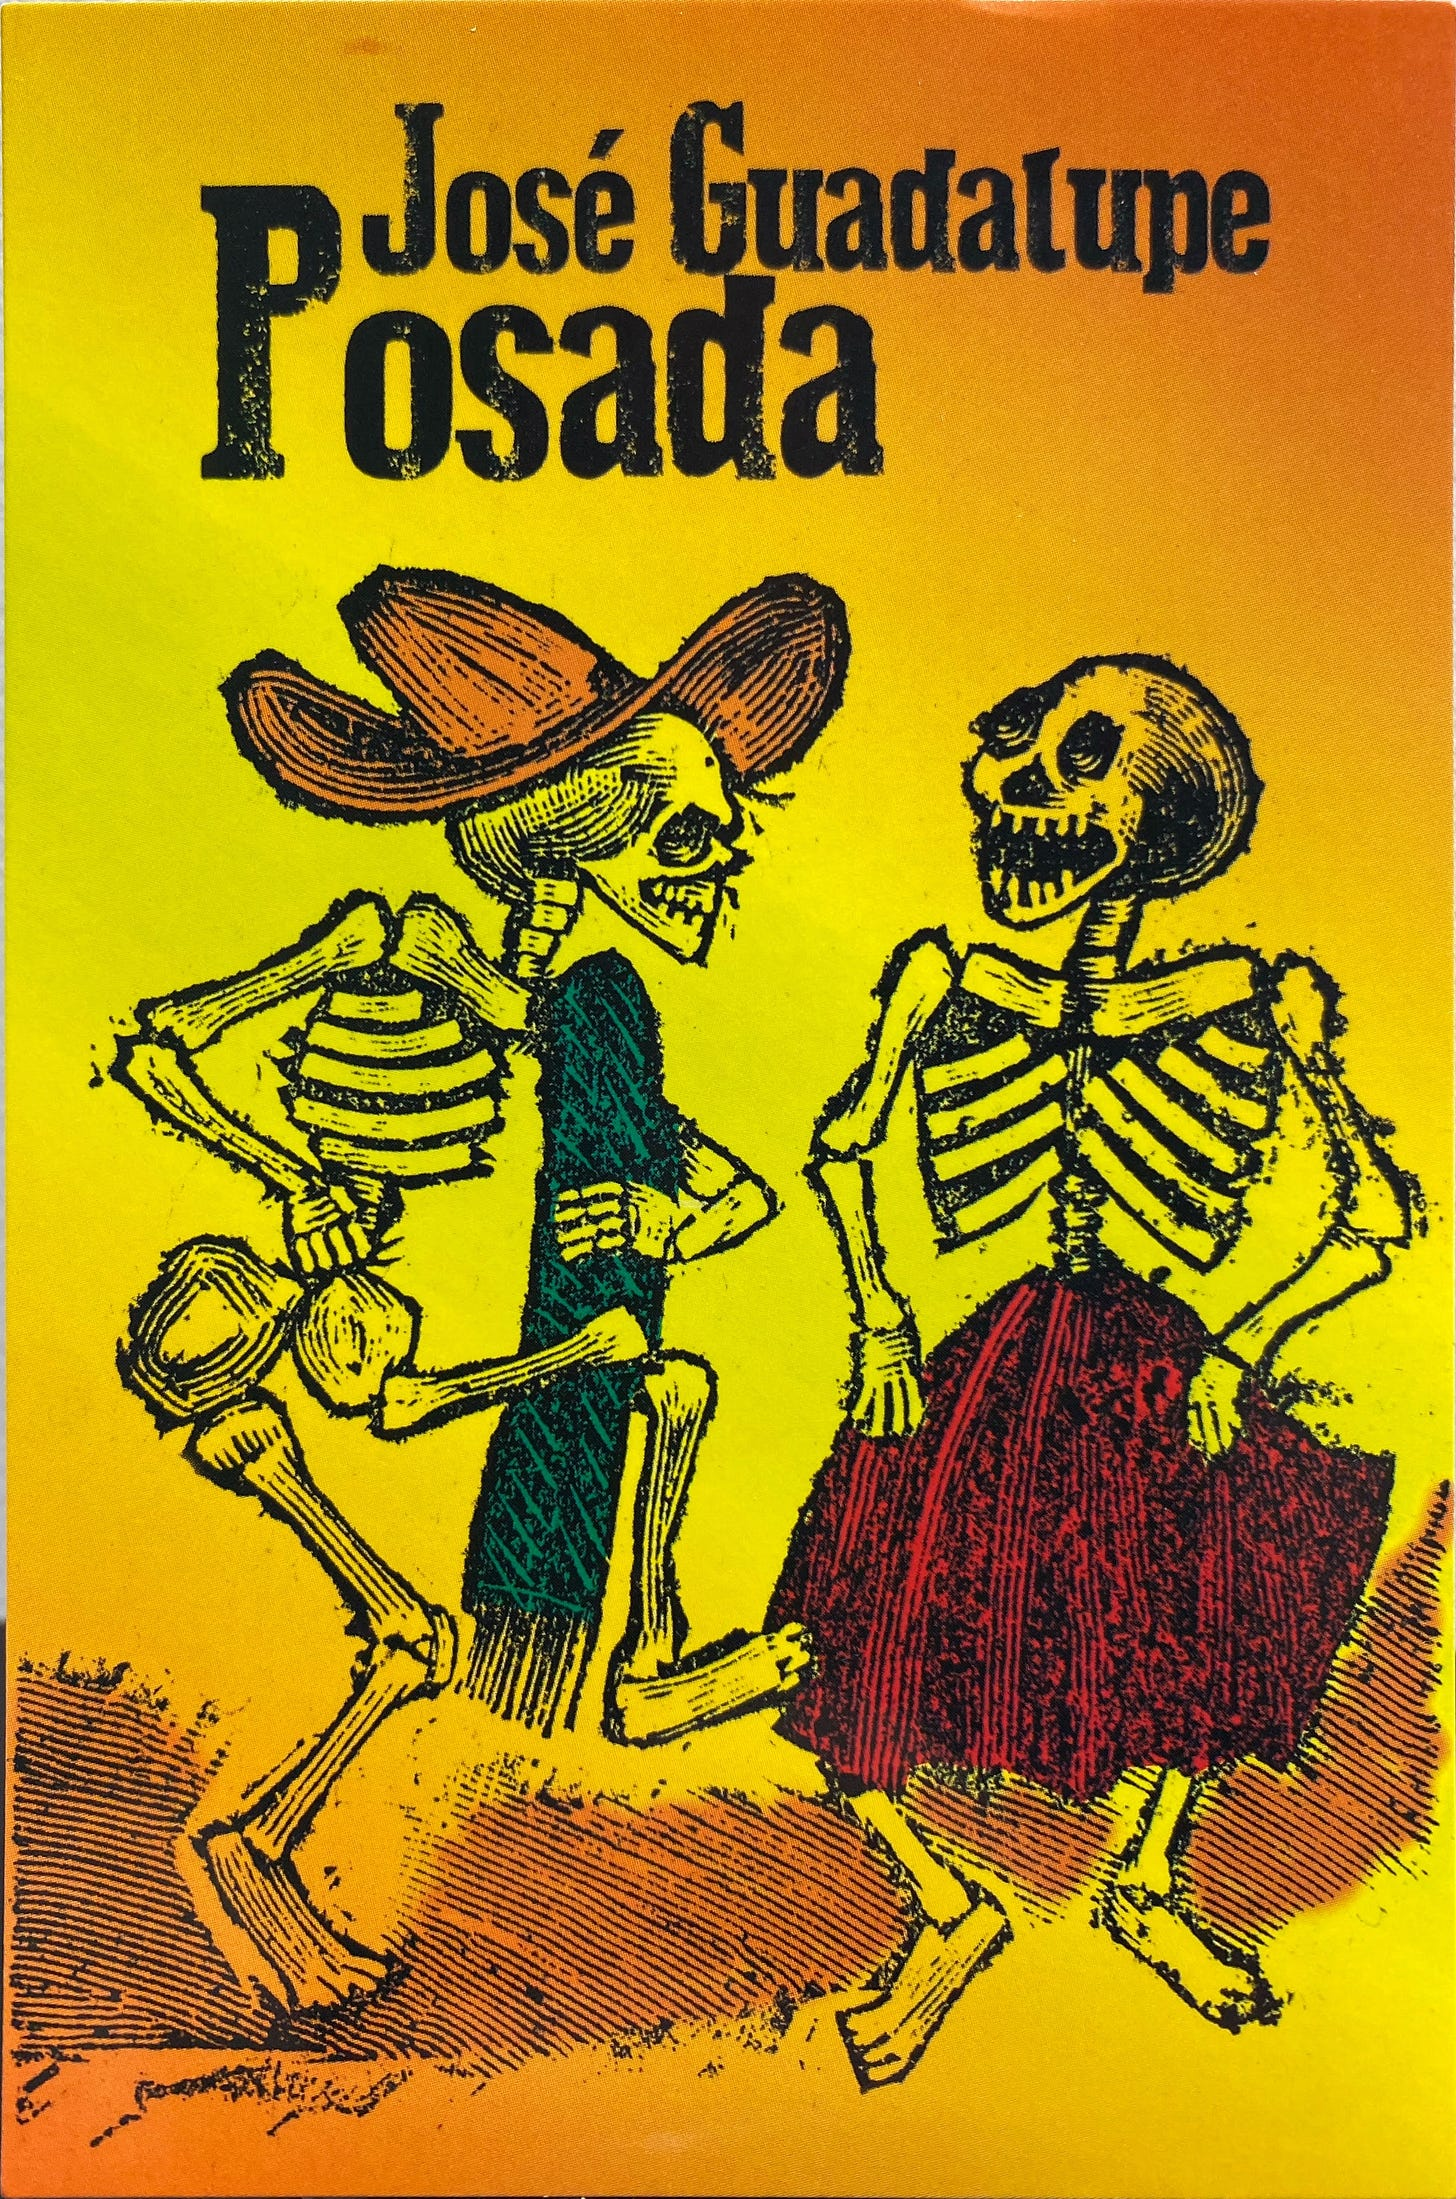 Text on top: José Guadalupe Posada. Two skeletons, one with a hat and a sarape, another with a skirt, appear to be dancing, facing each other.